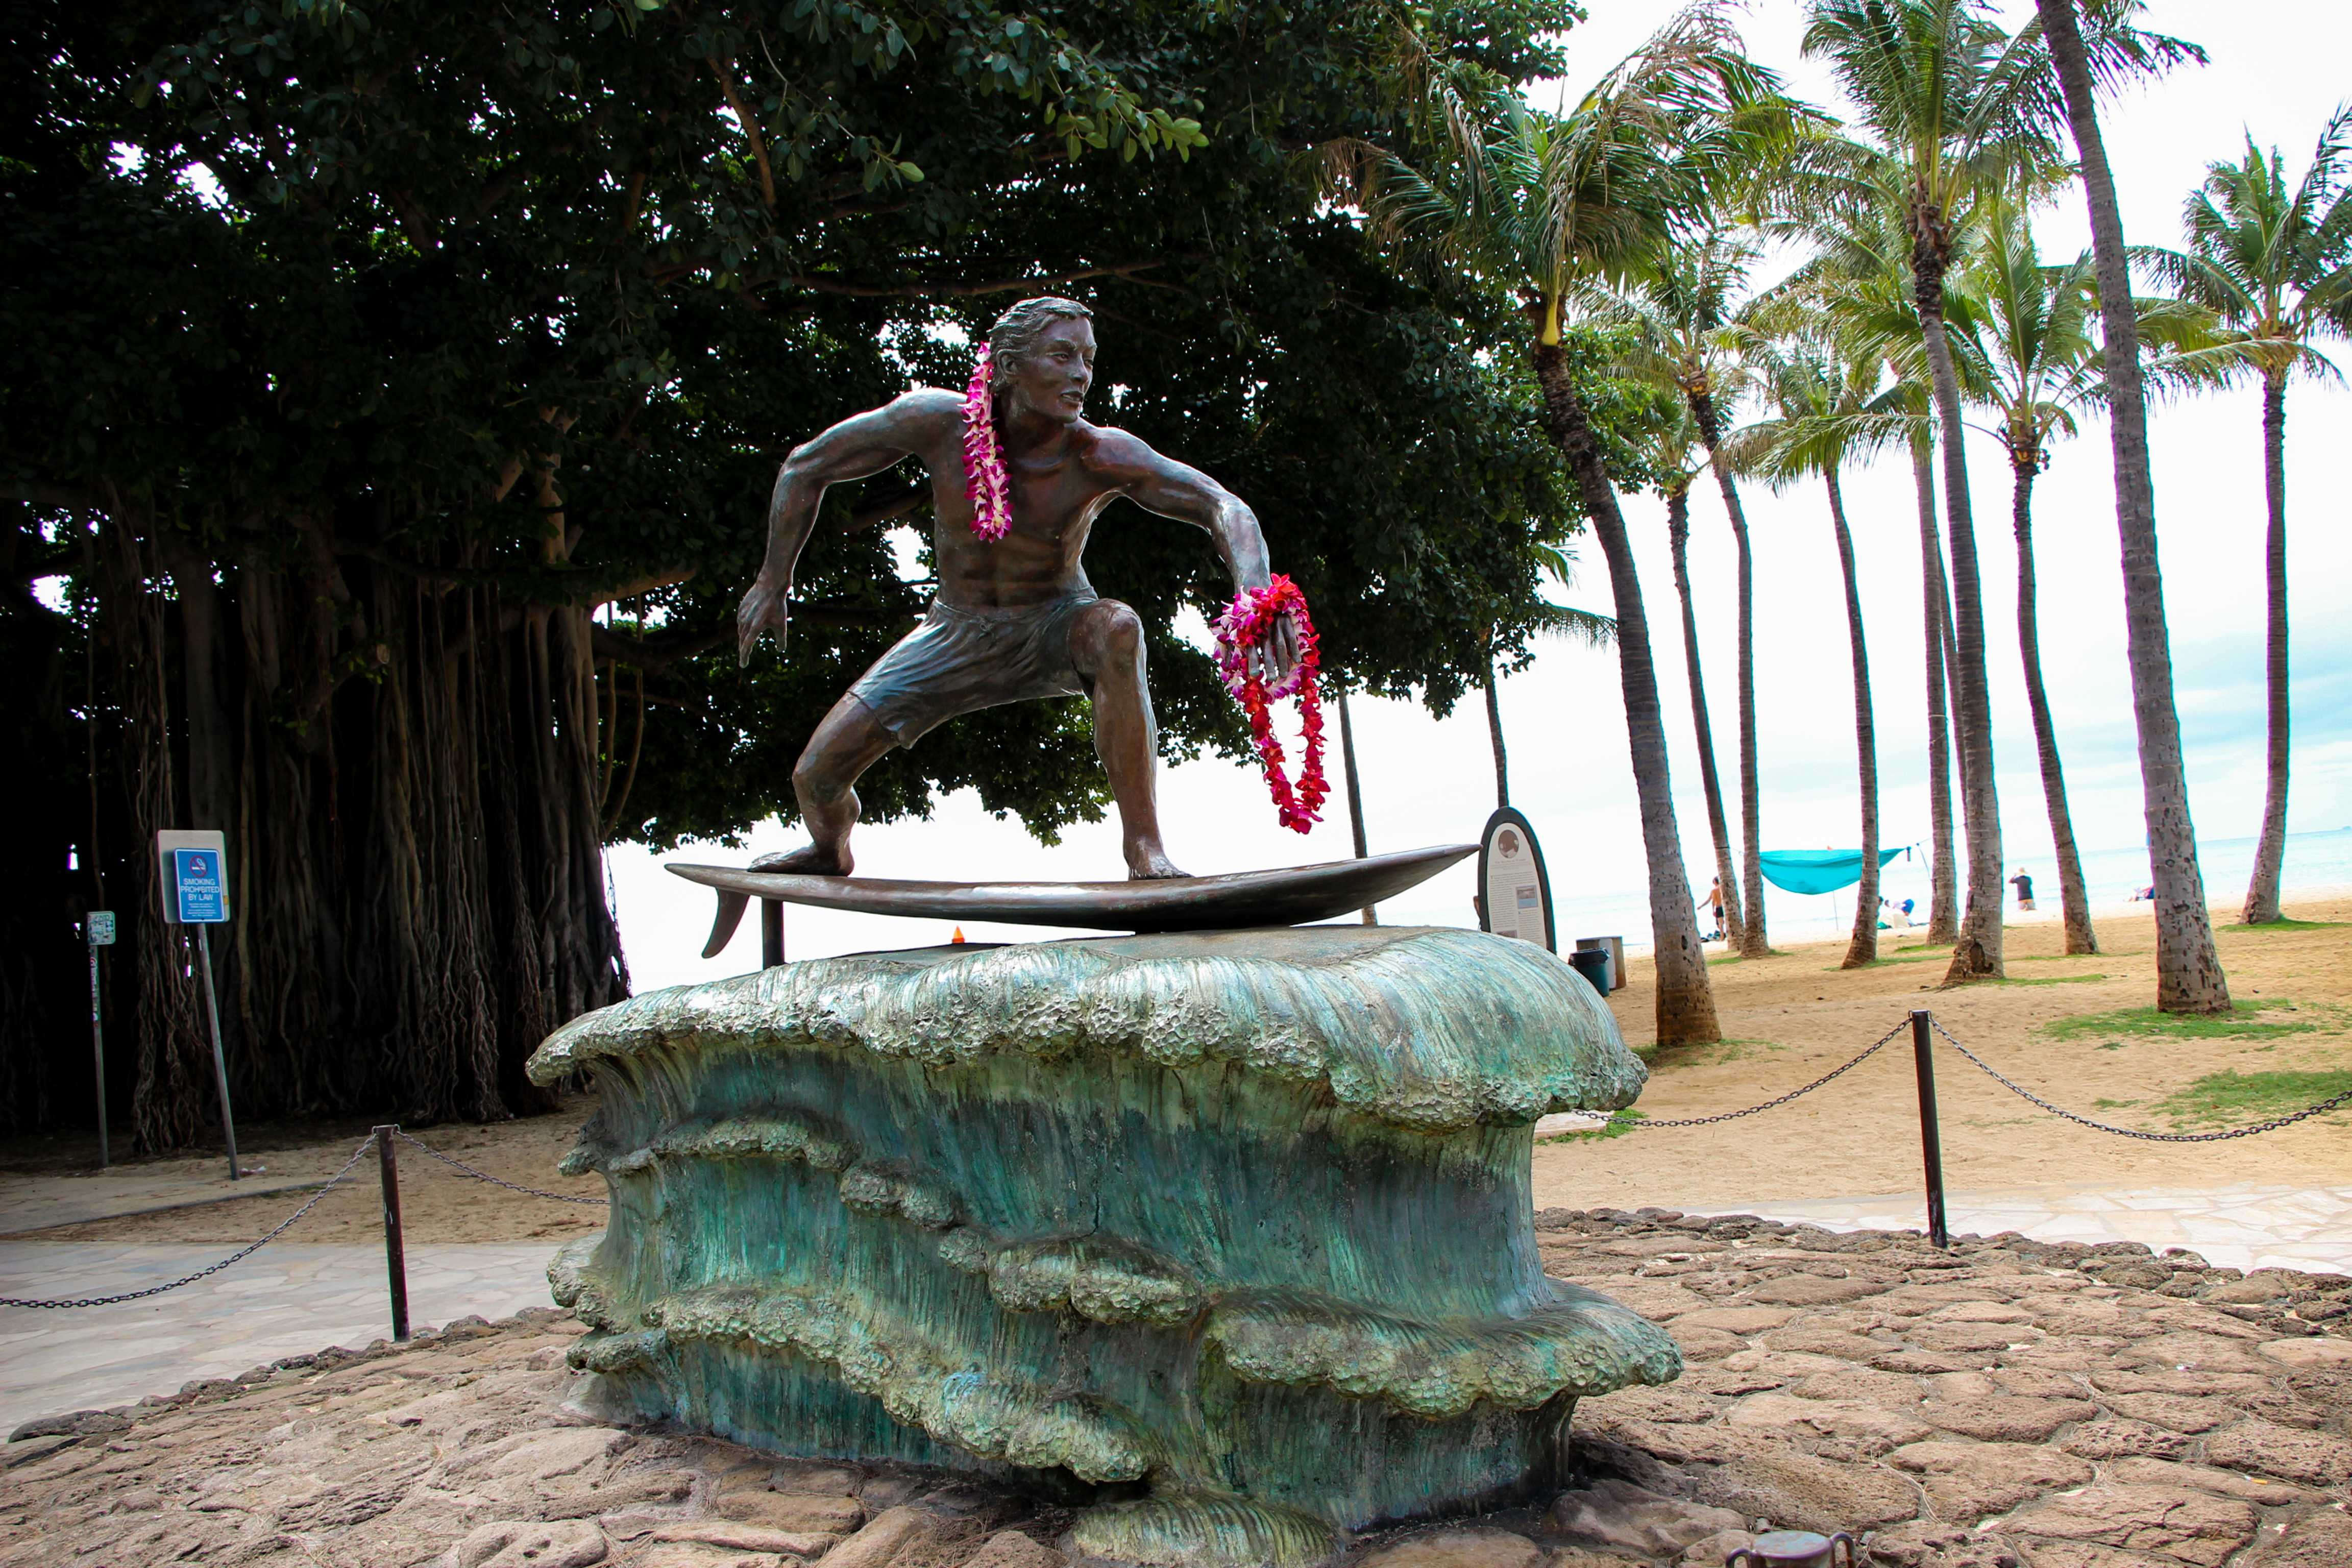 Surfer On a Wave Statue